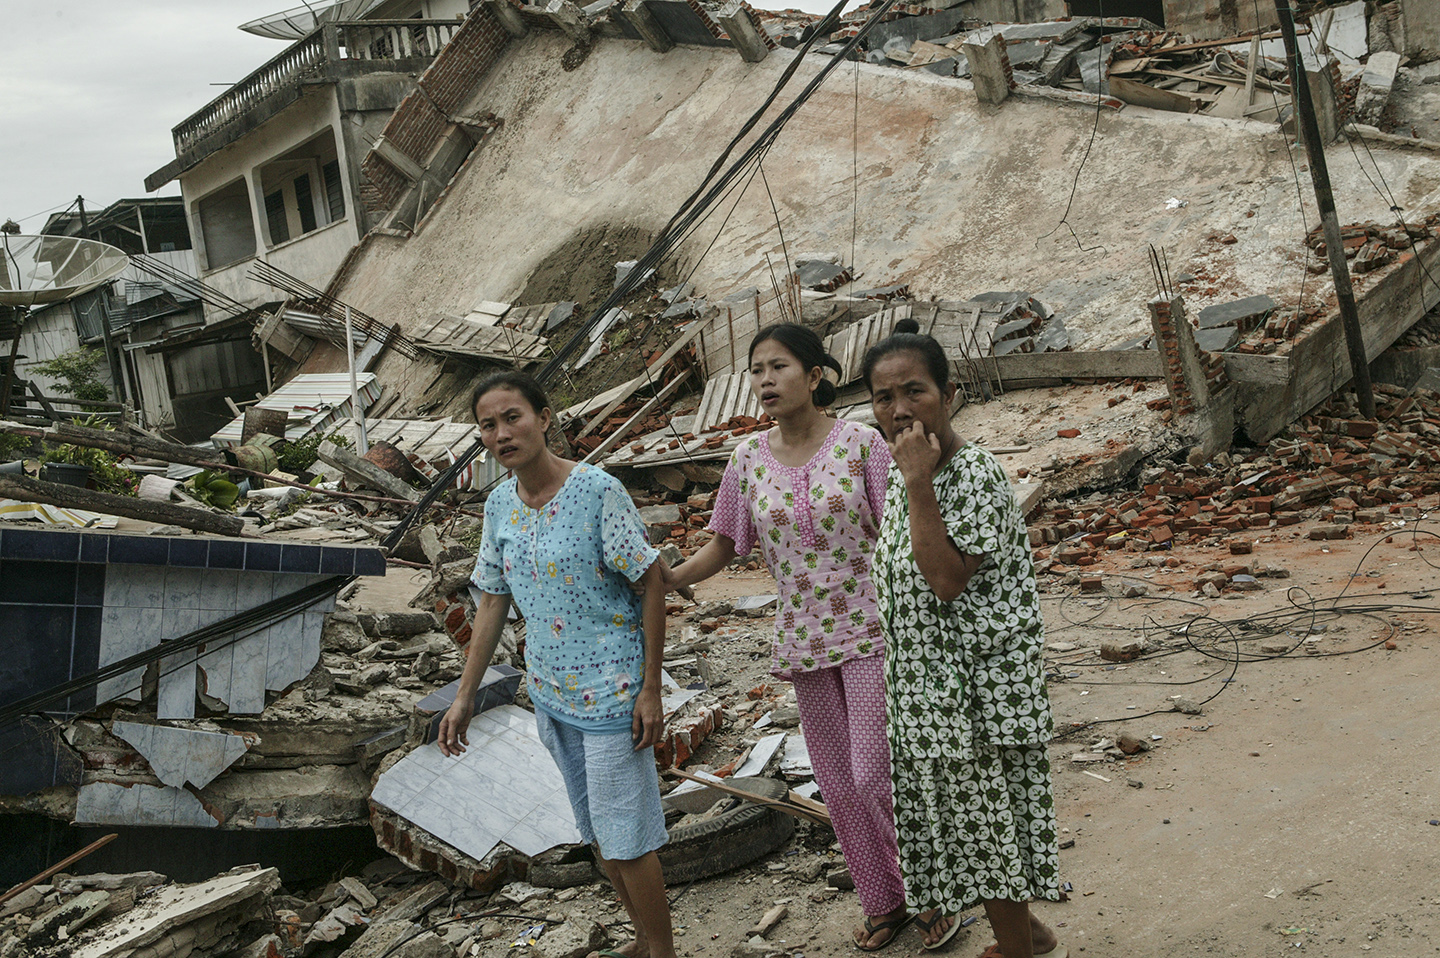 On March 28, 2005 the island of Nias, on the western coast of Sumatra, was hit by an 8.3 earthquake.